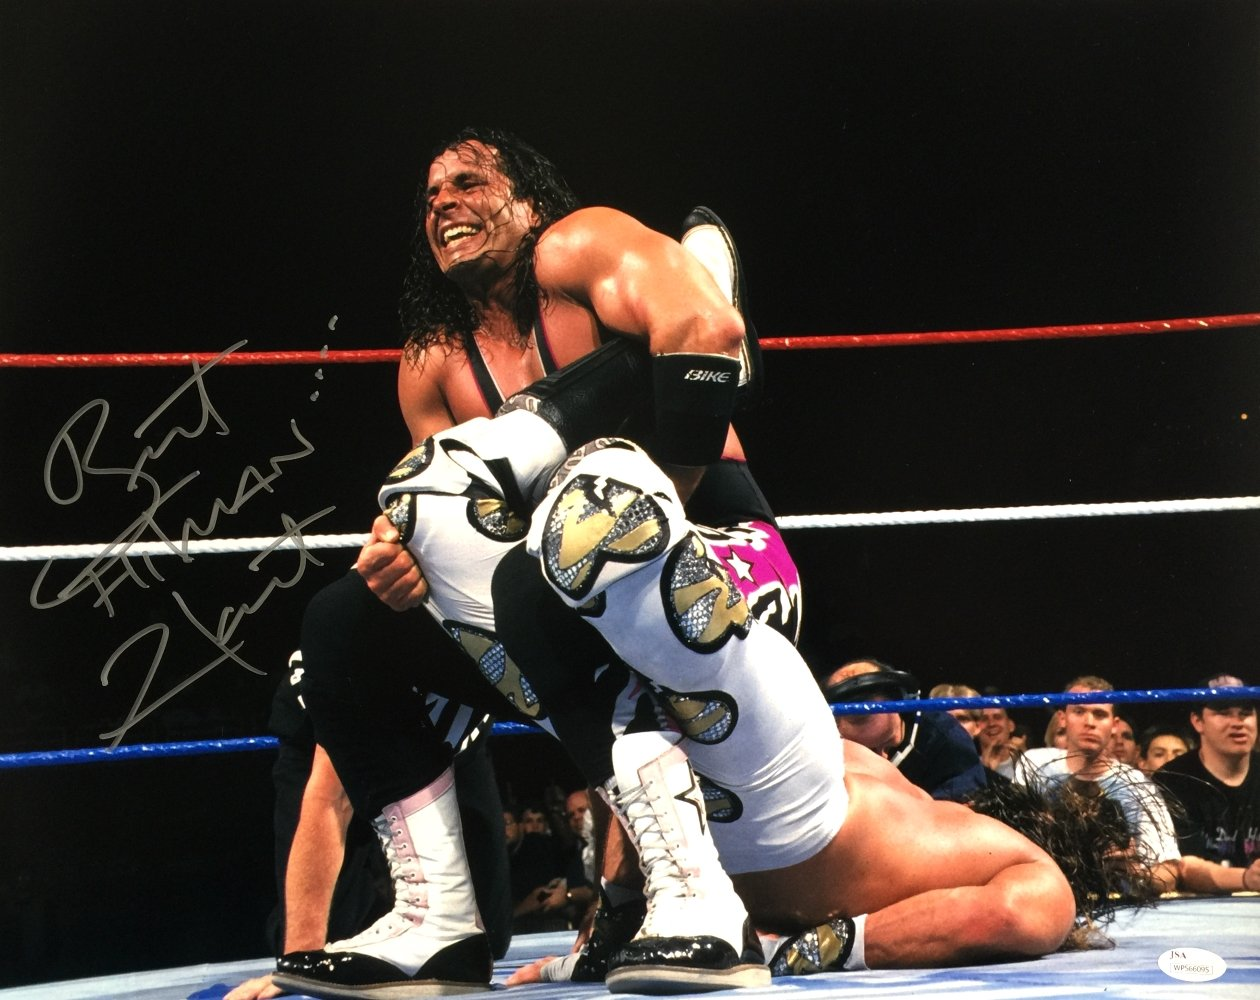 Bret Hart Signed WWE 16x20 WrestleMania XII Sharpshooter VS HBK Photo JSA